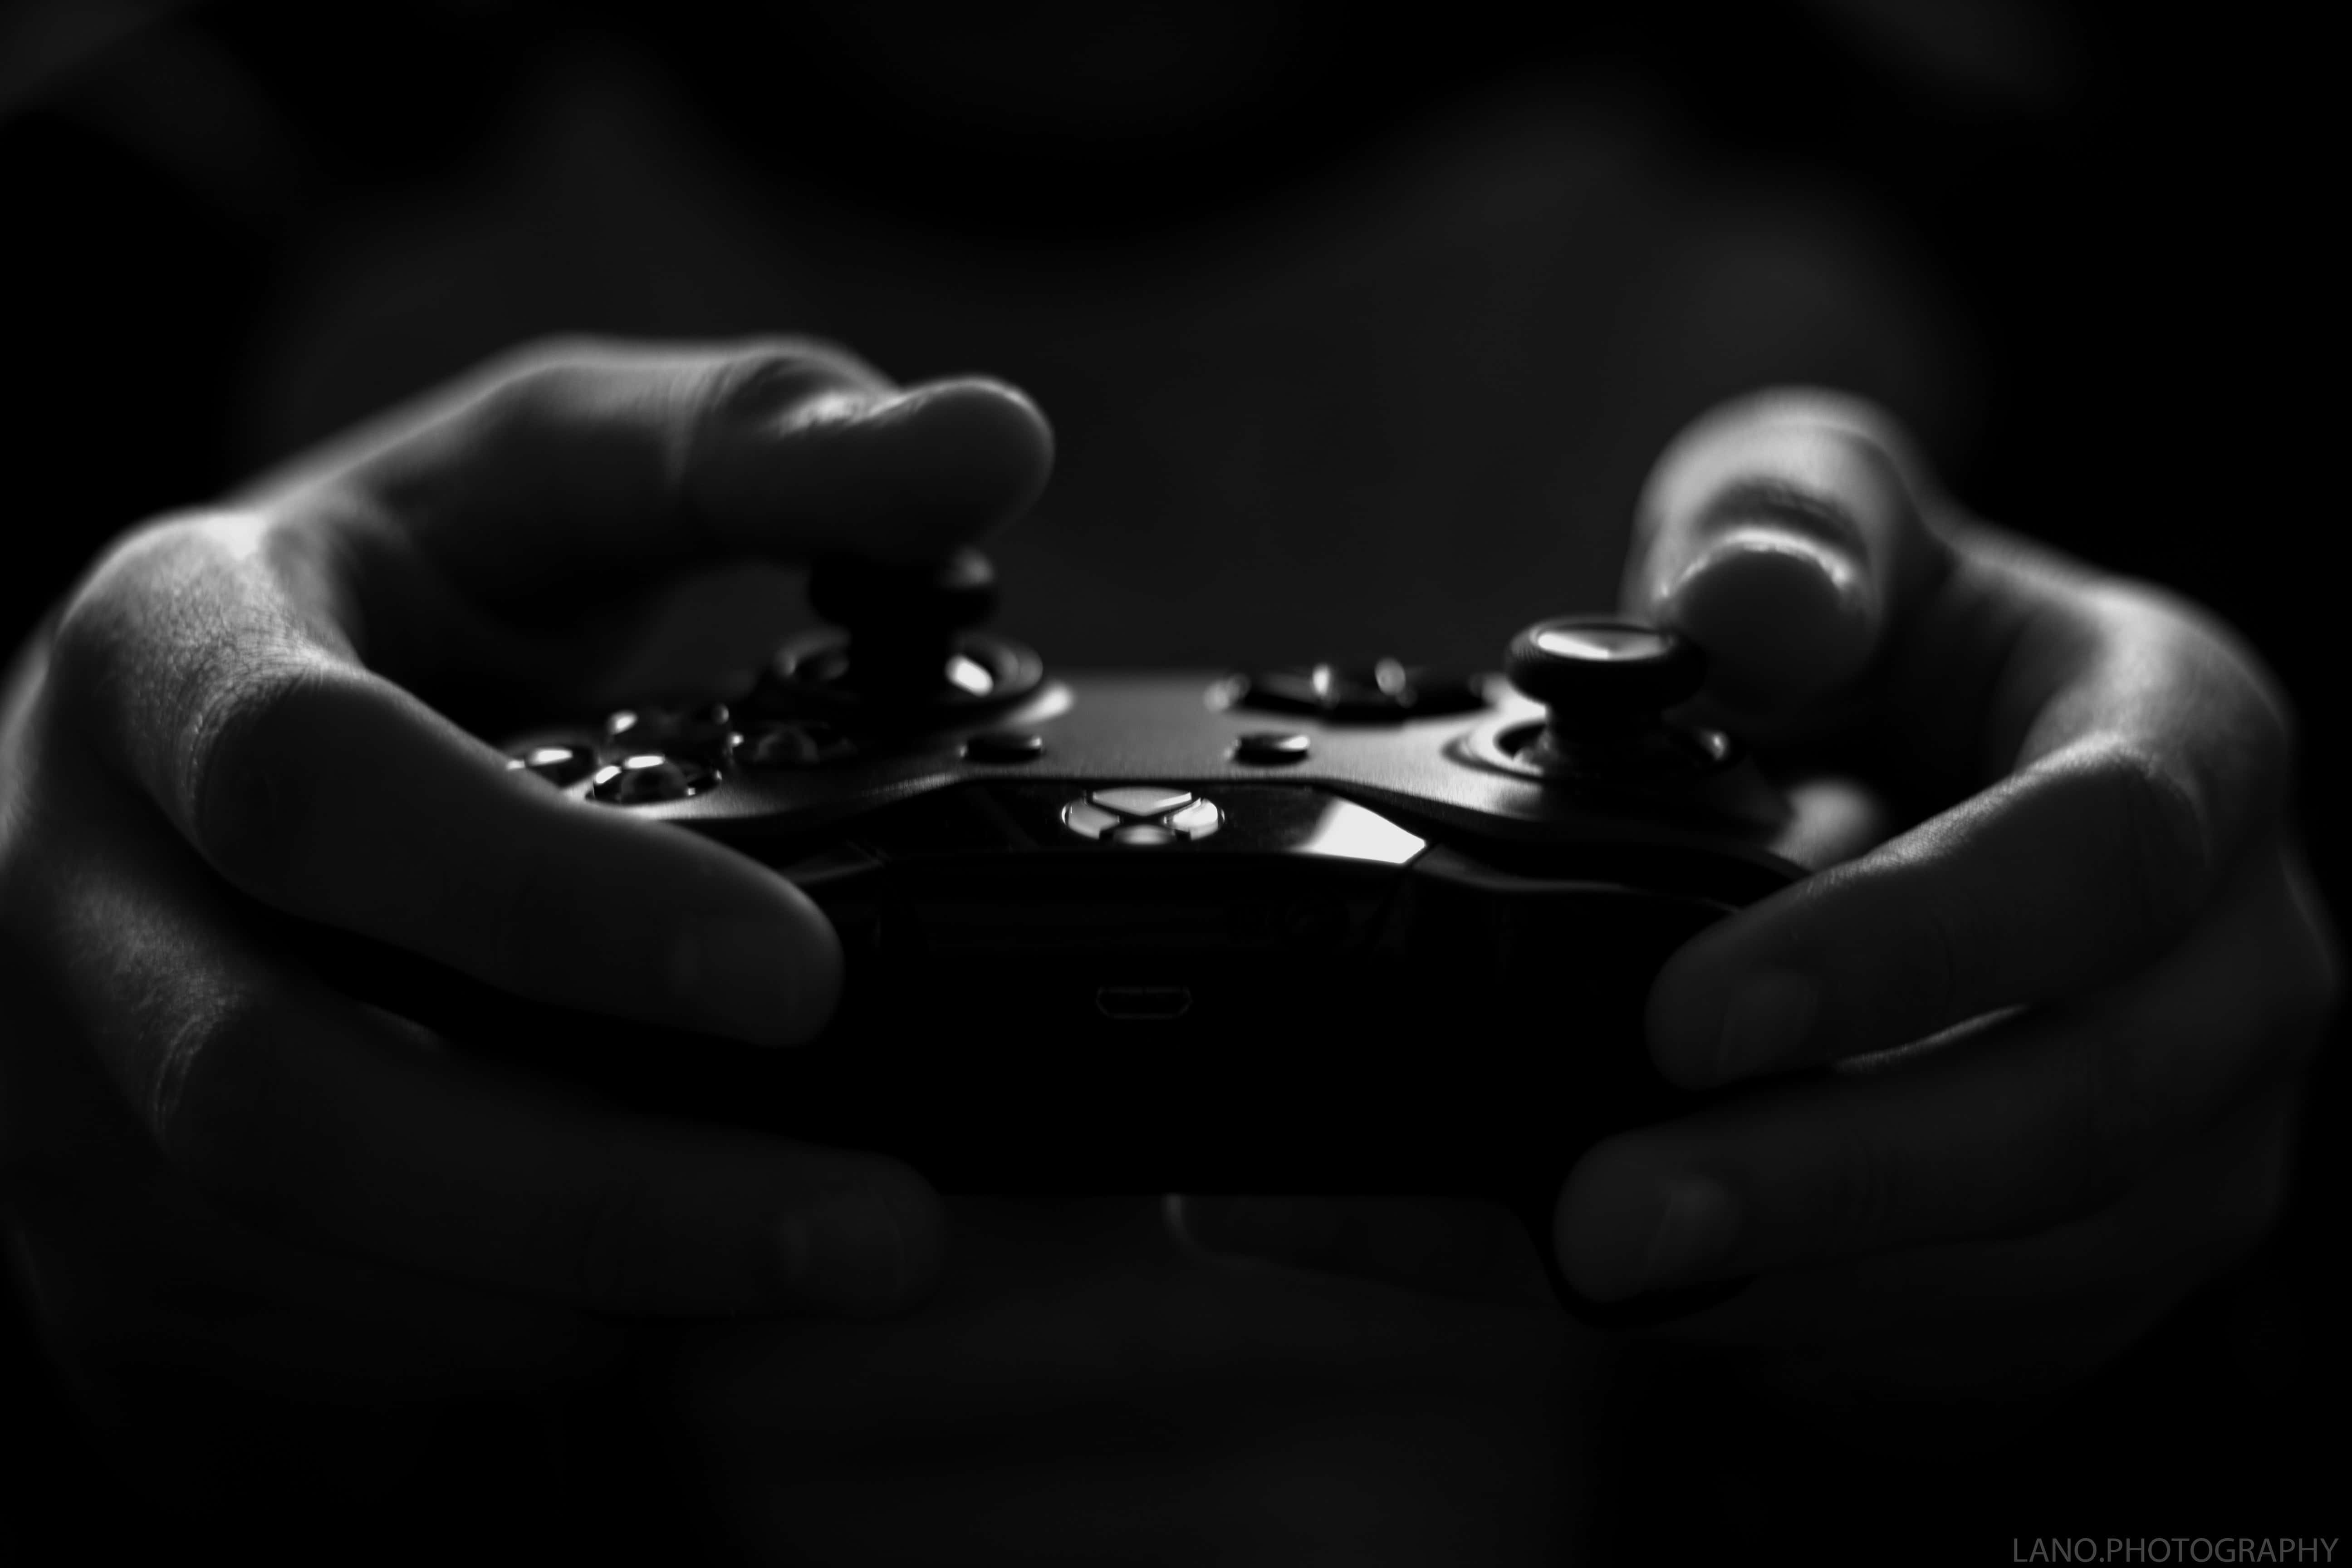 person holding a controller.